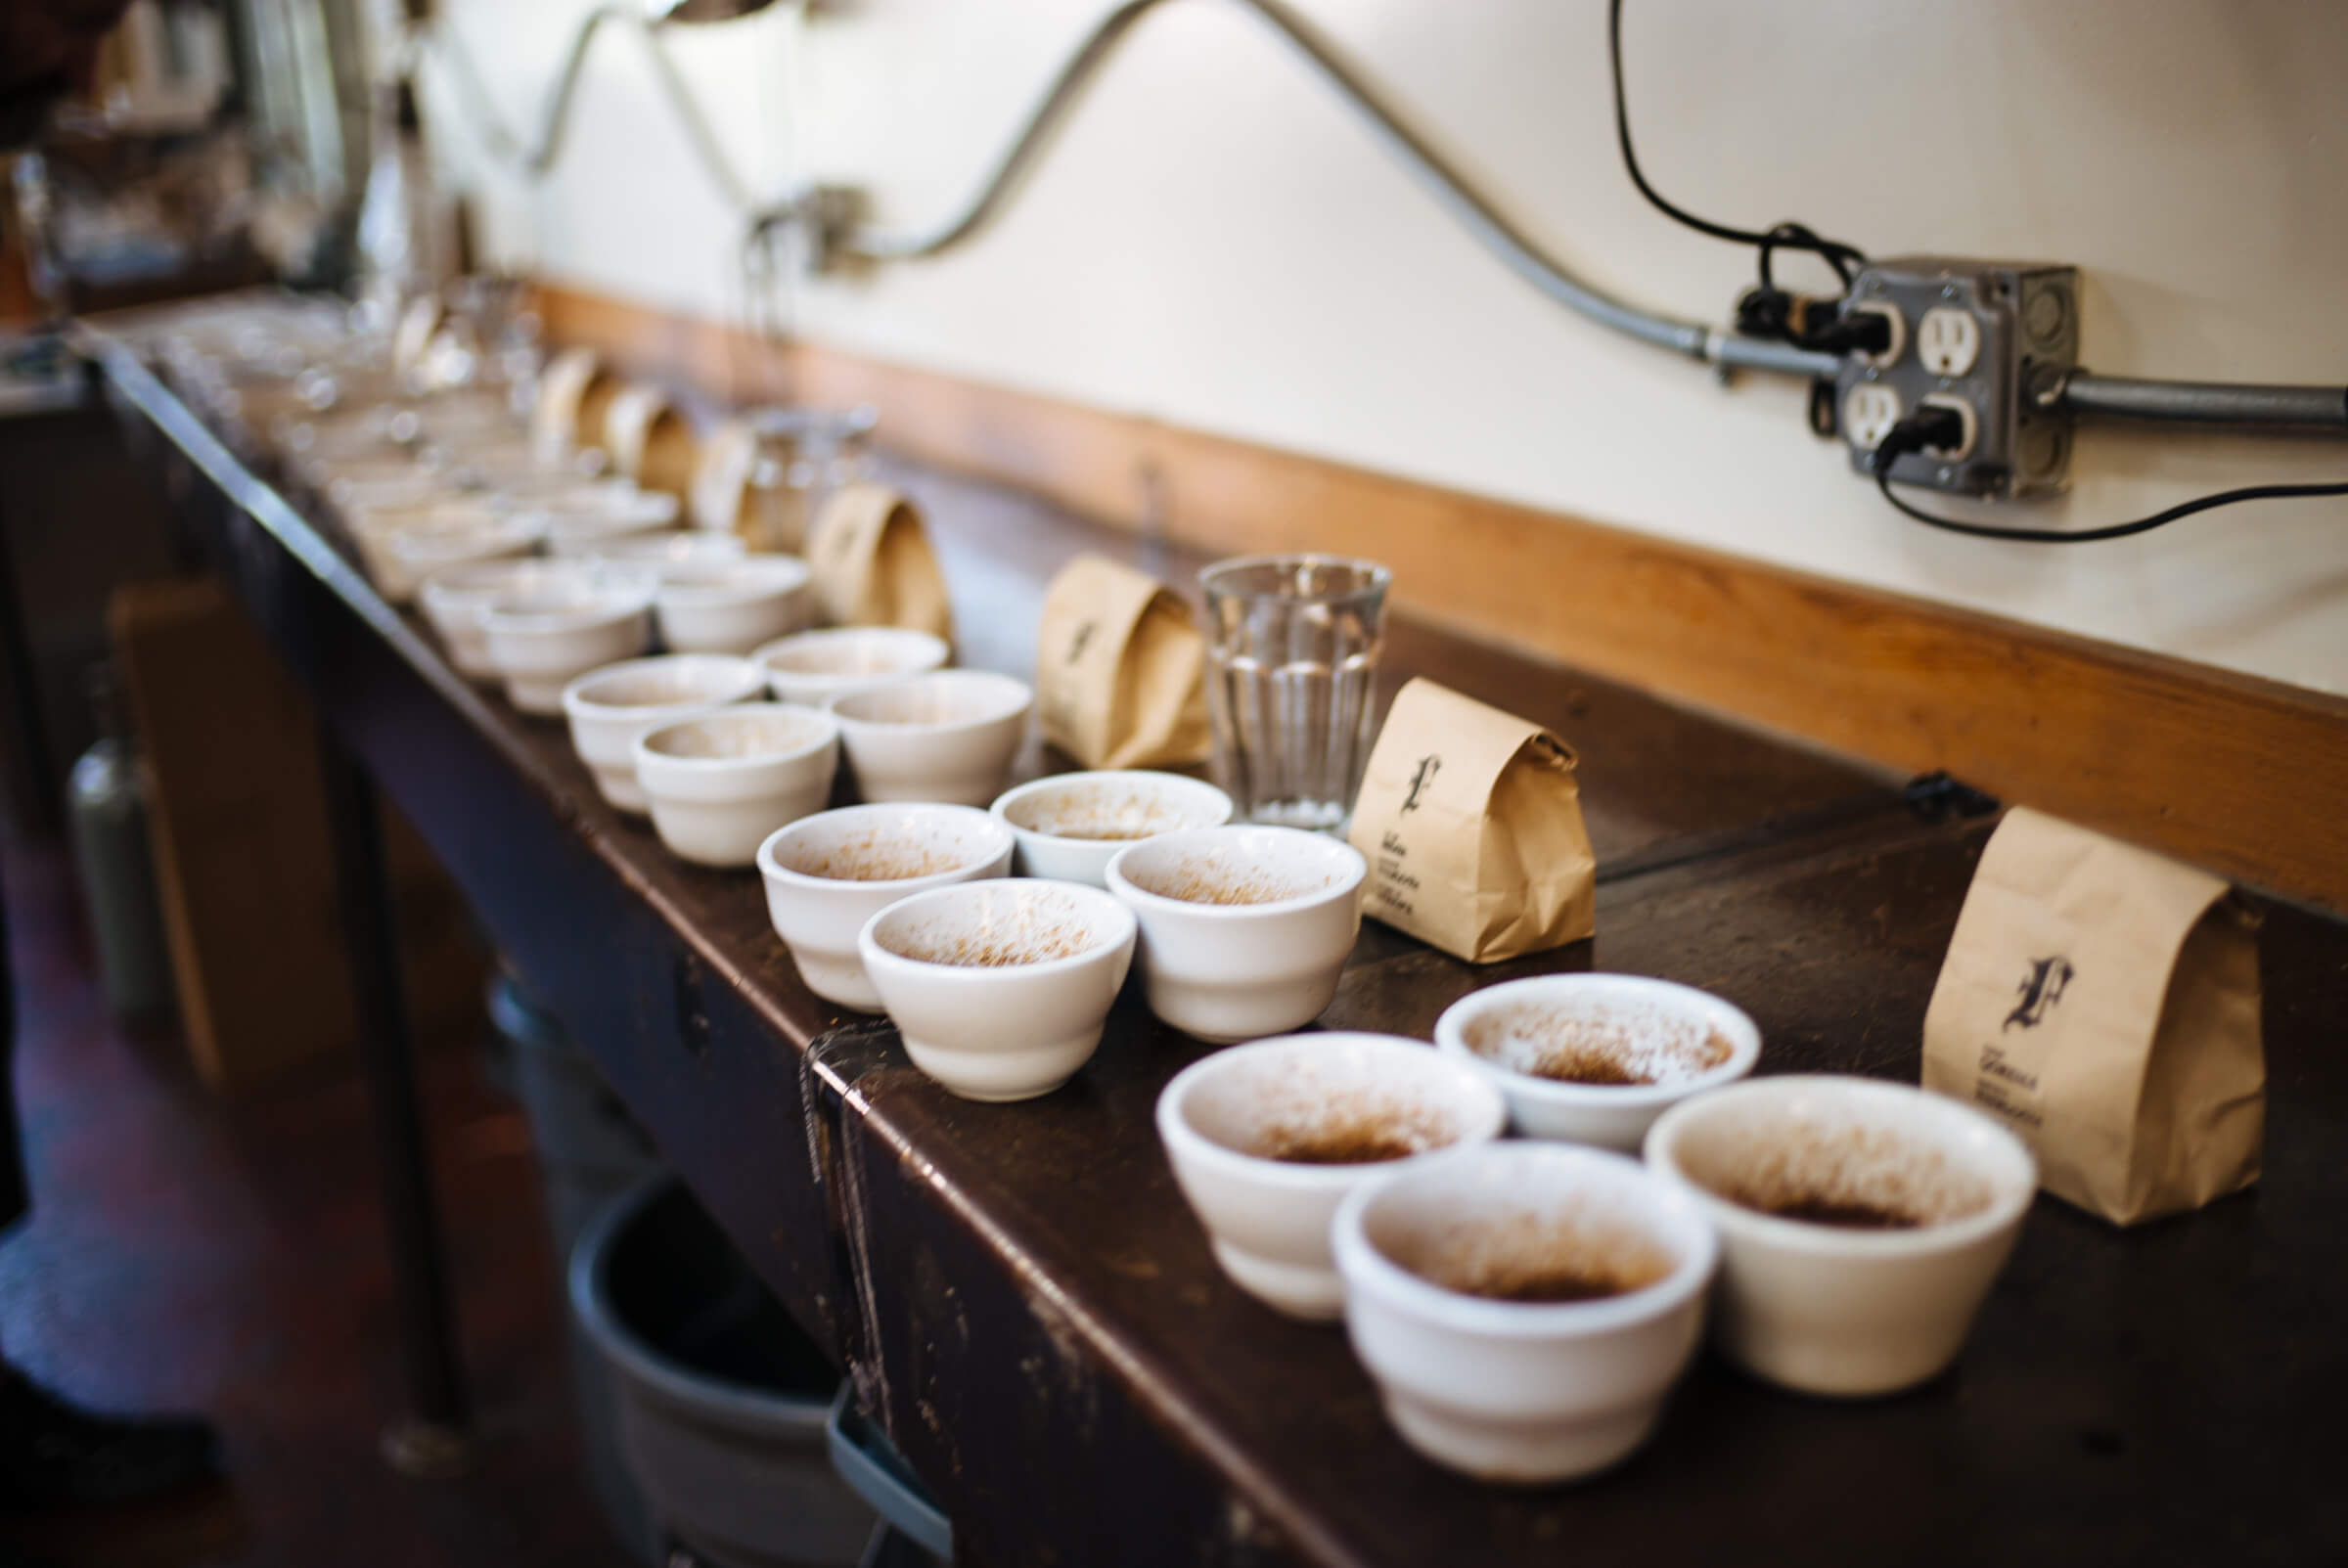 Cupping and tasting at Four Barrel Coffee in San Francisco, The Taste SF